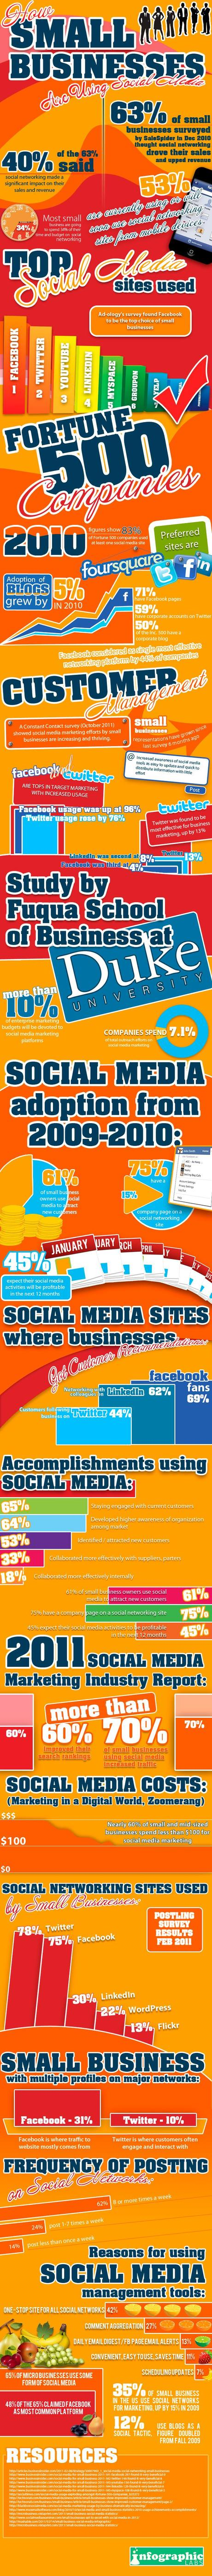 How Small Businesses Are Using Social Media